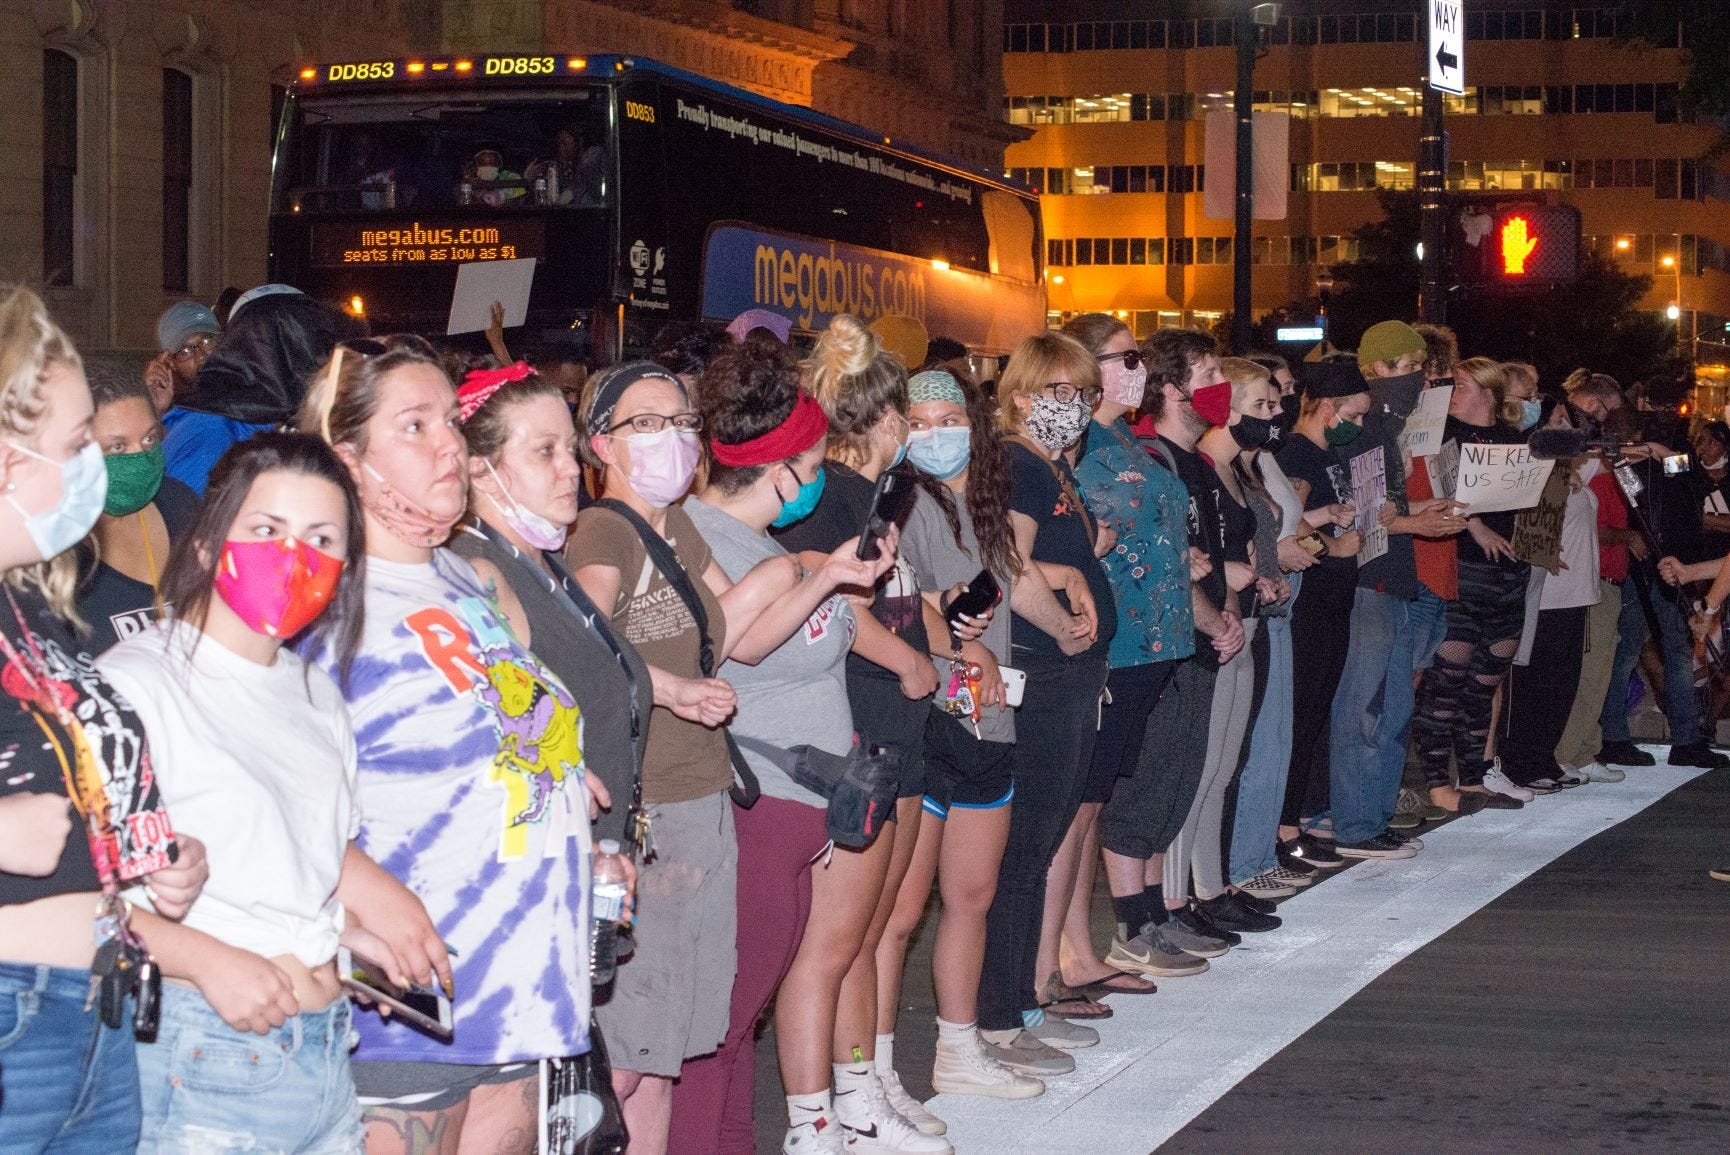 A line of almost all white women formed between police officers and black protesters at a rally in downtown Louisville calling for justice in the death of Breonna Taylor.